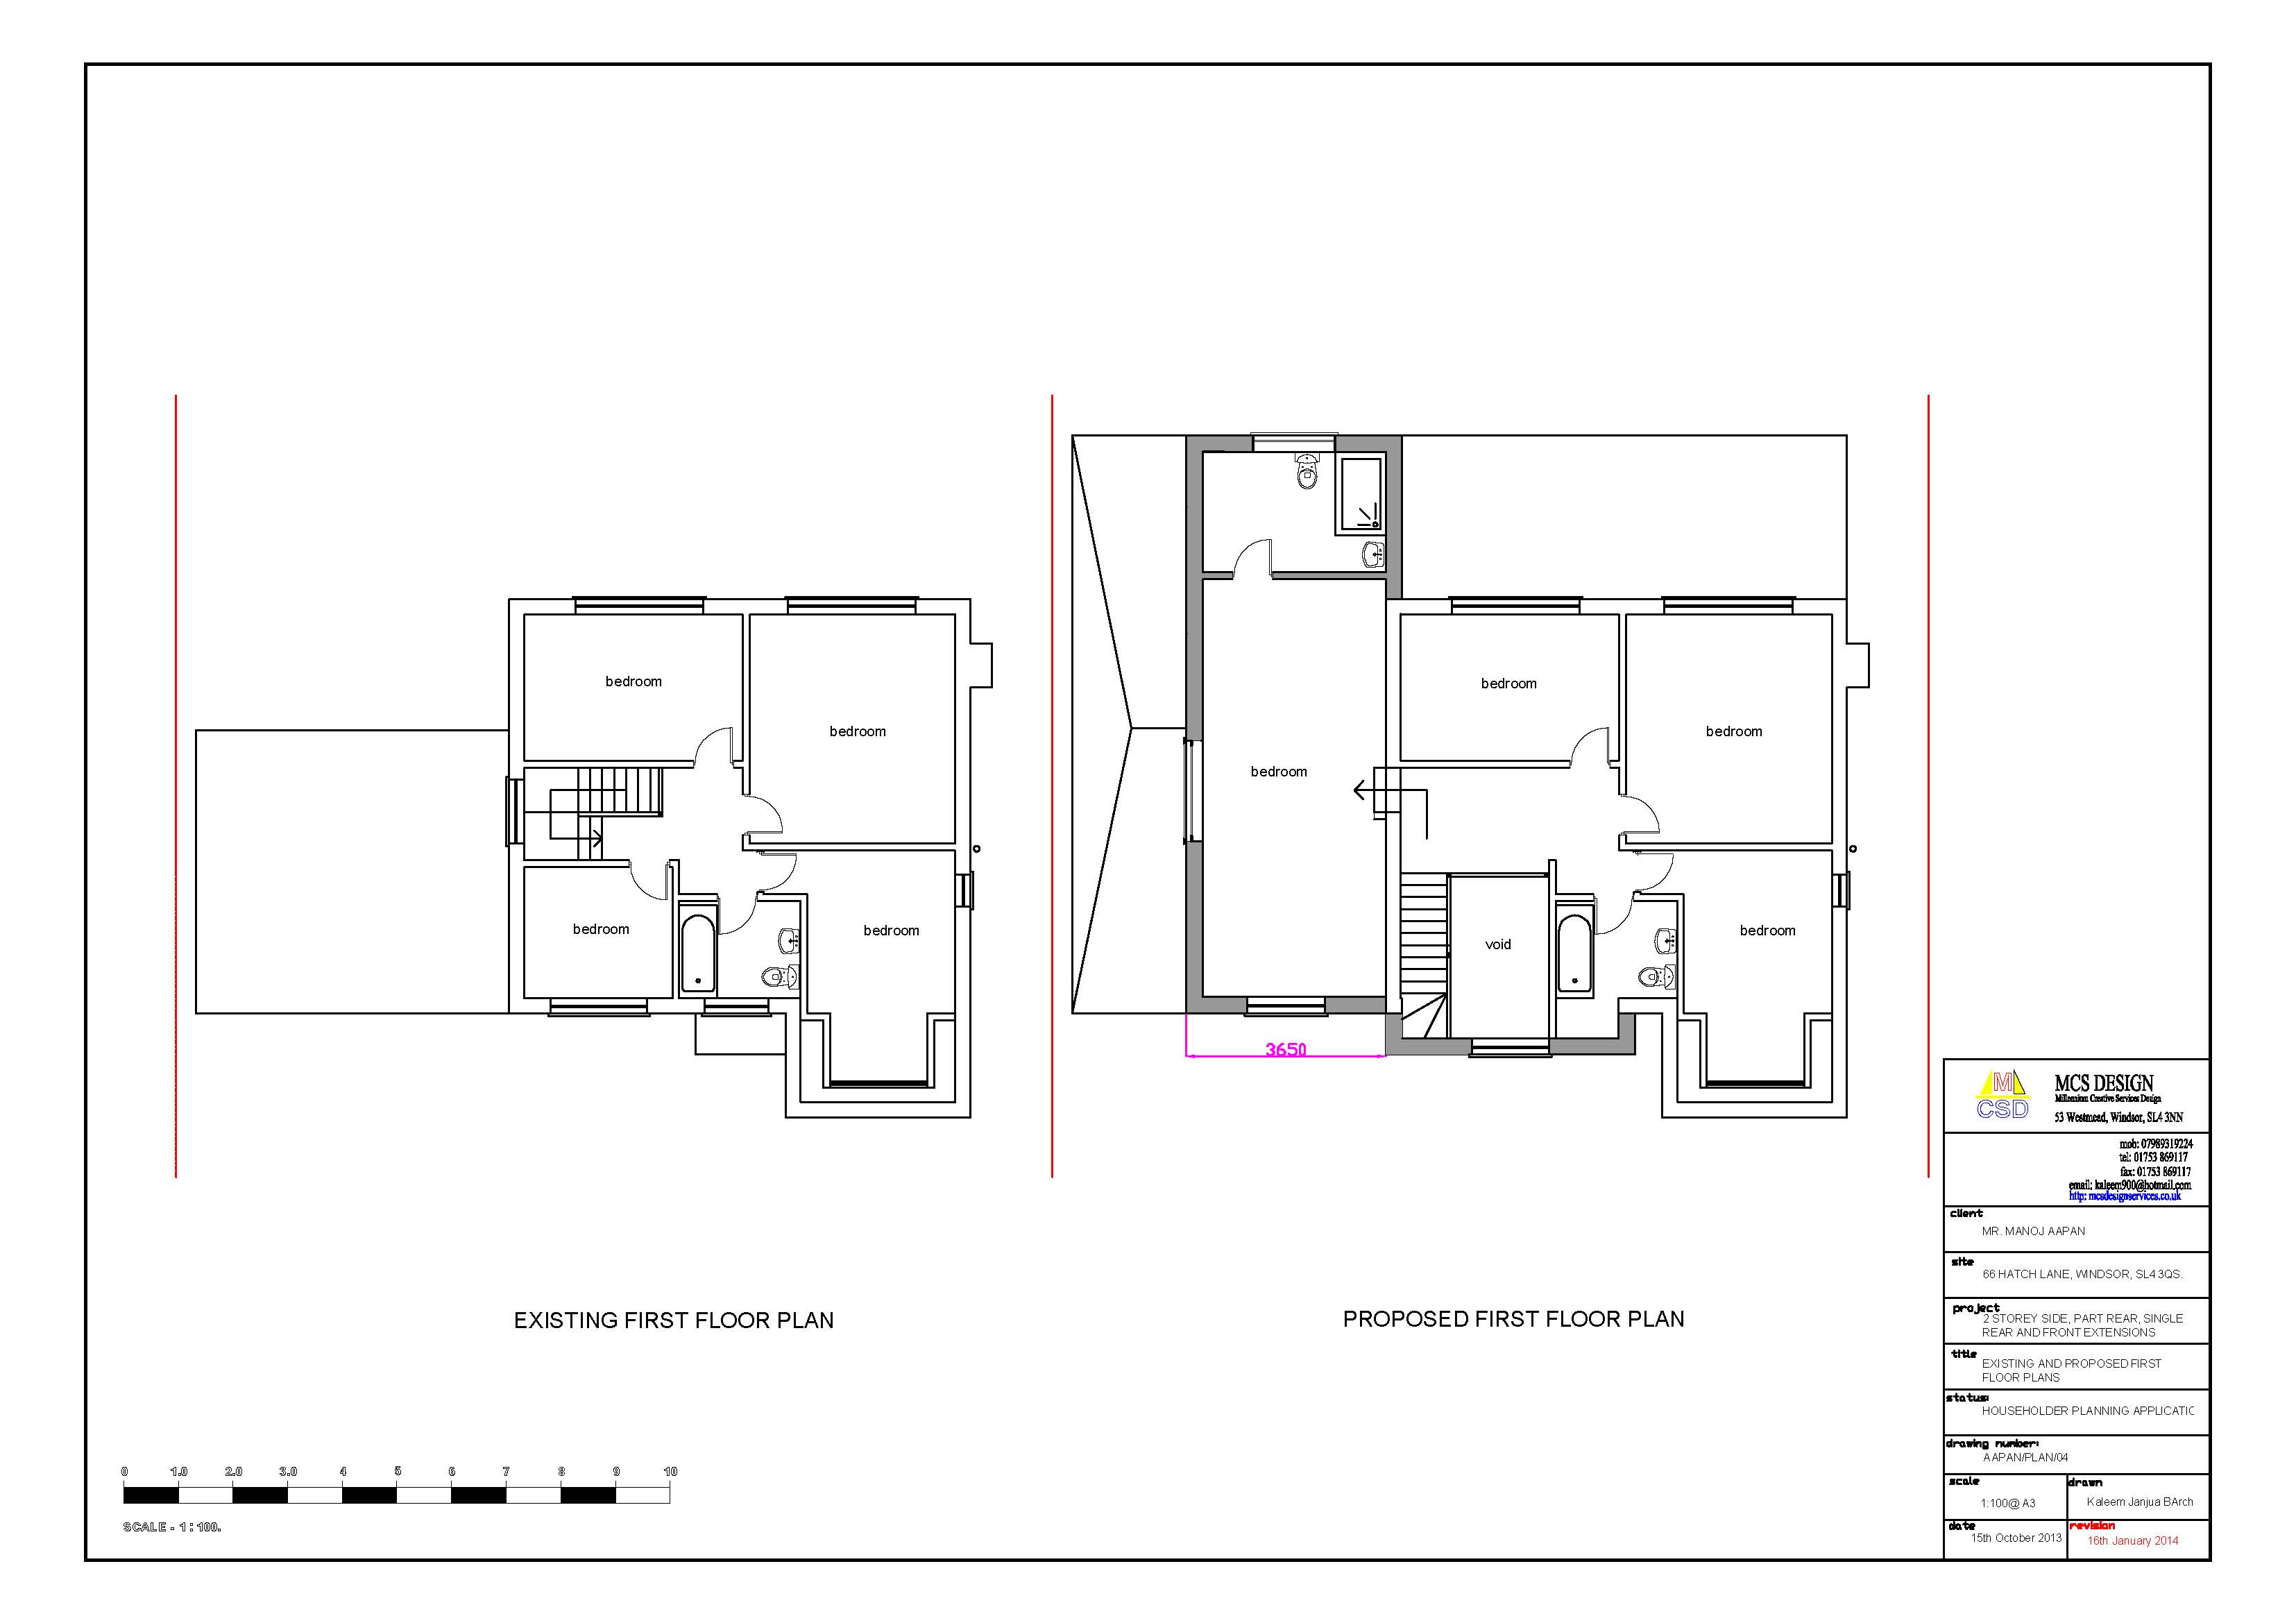 Floor plan synonym1500 sq ft house plans with walkout bat for Floored synonym